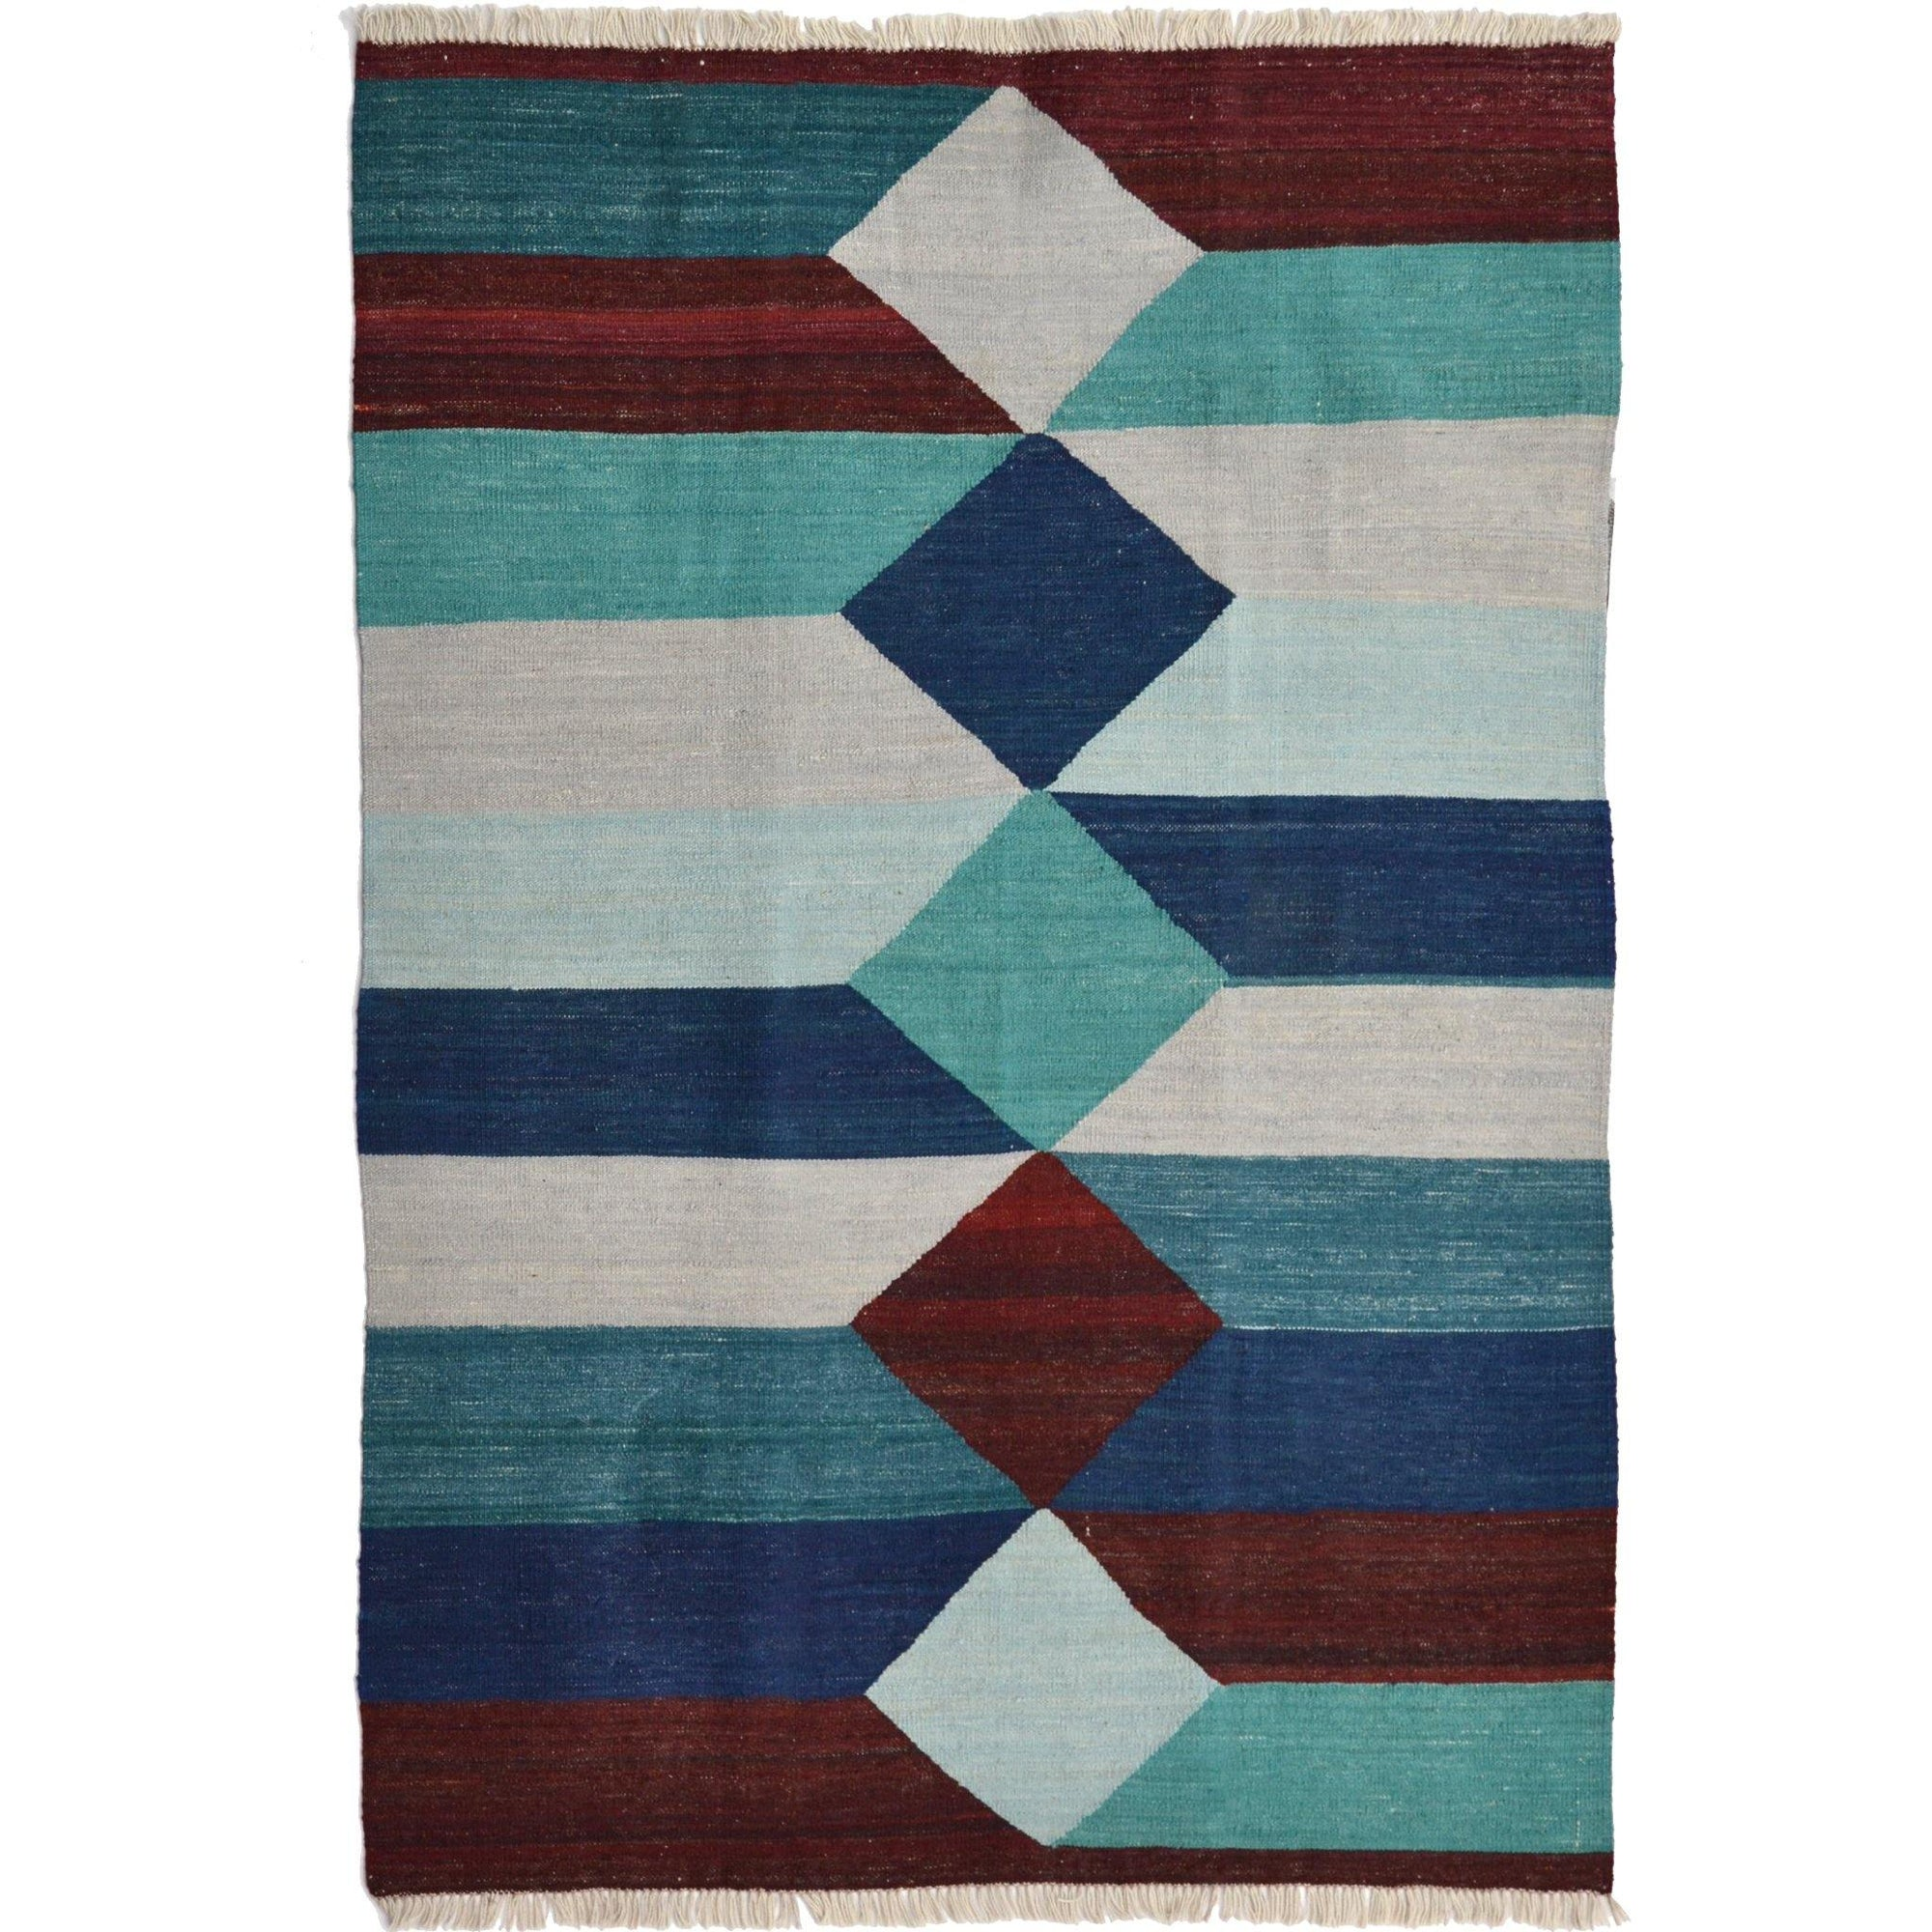 Modern Hand-woven 100% Wool Afghan Kilim Rug 128cm x 172cm Persian-Rug | House-of-Haghi | NewMarket | Auckland | NZ | Handmade Persian Rugs | Hand Knotted Persian Rugs